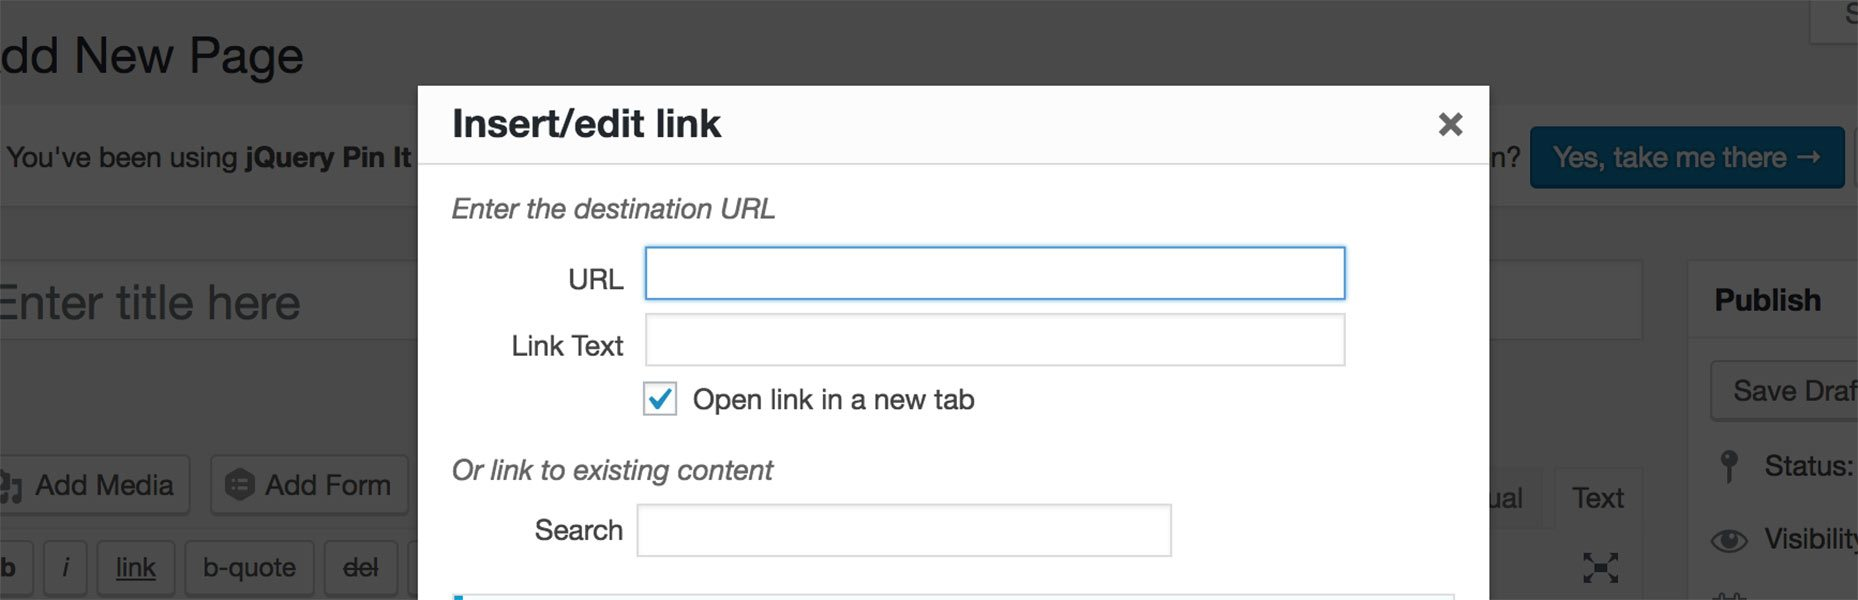 Featured Image WordPress Content Editor Default Links To New Tab/Window